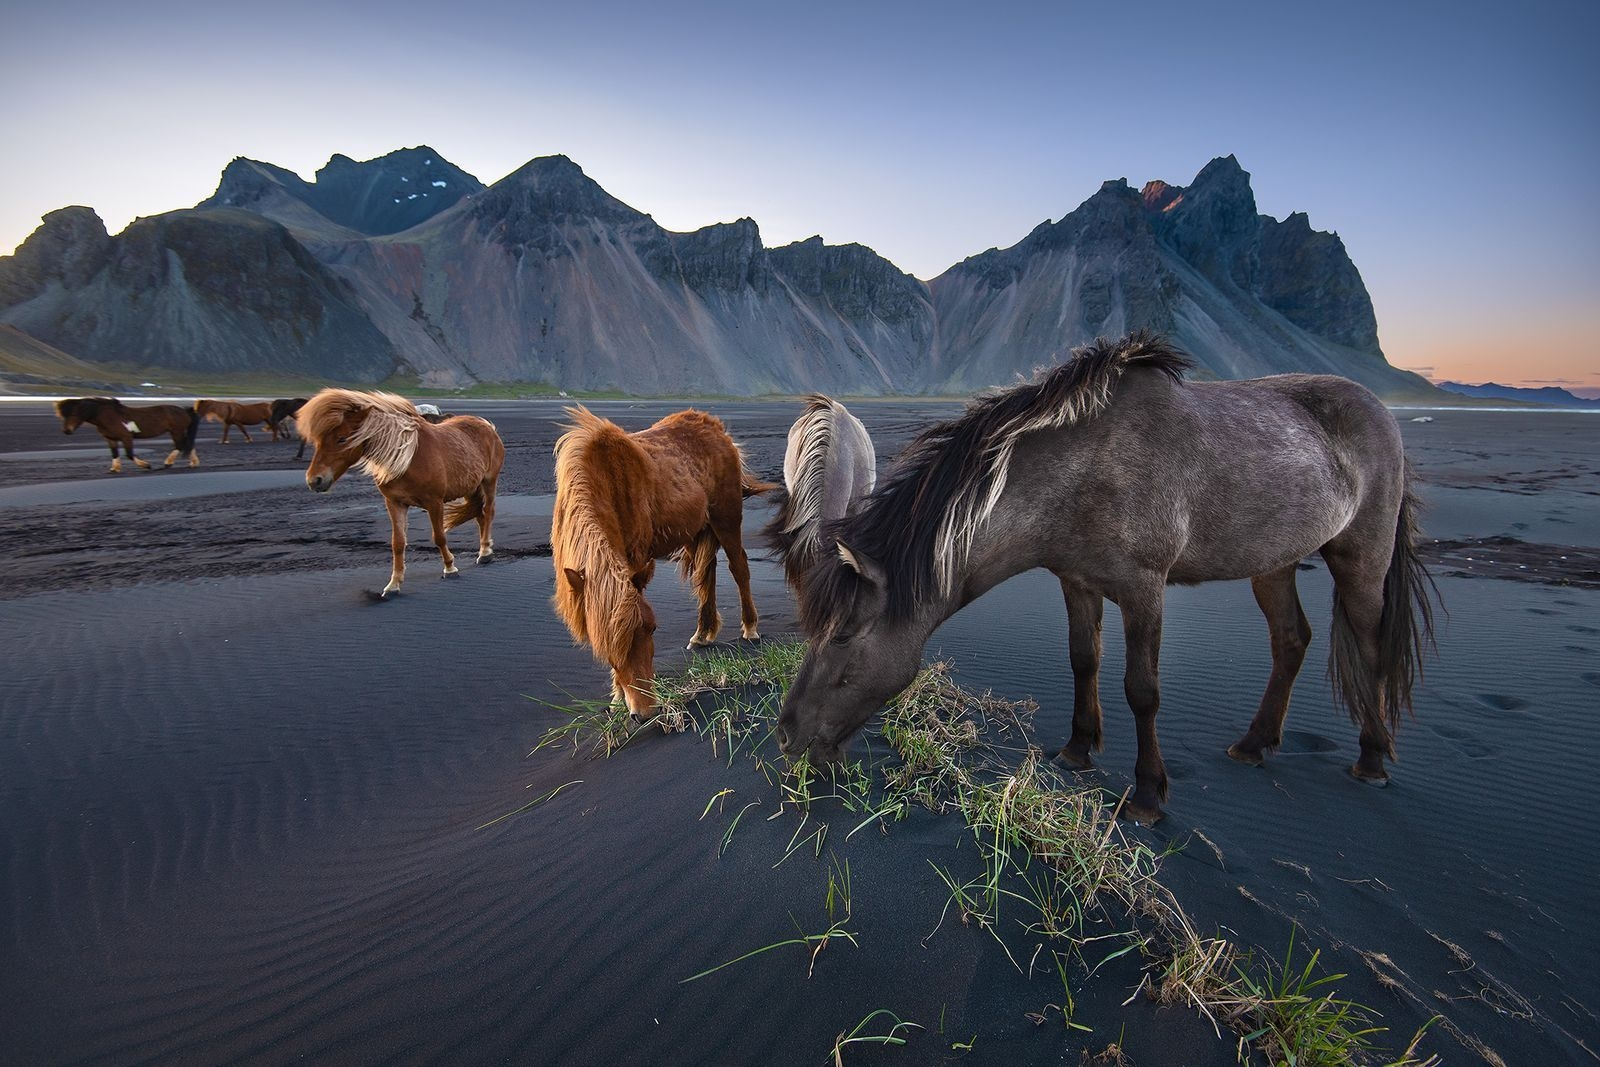 Photograph by Donald Yip, National Geographic Your Shot